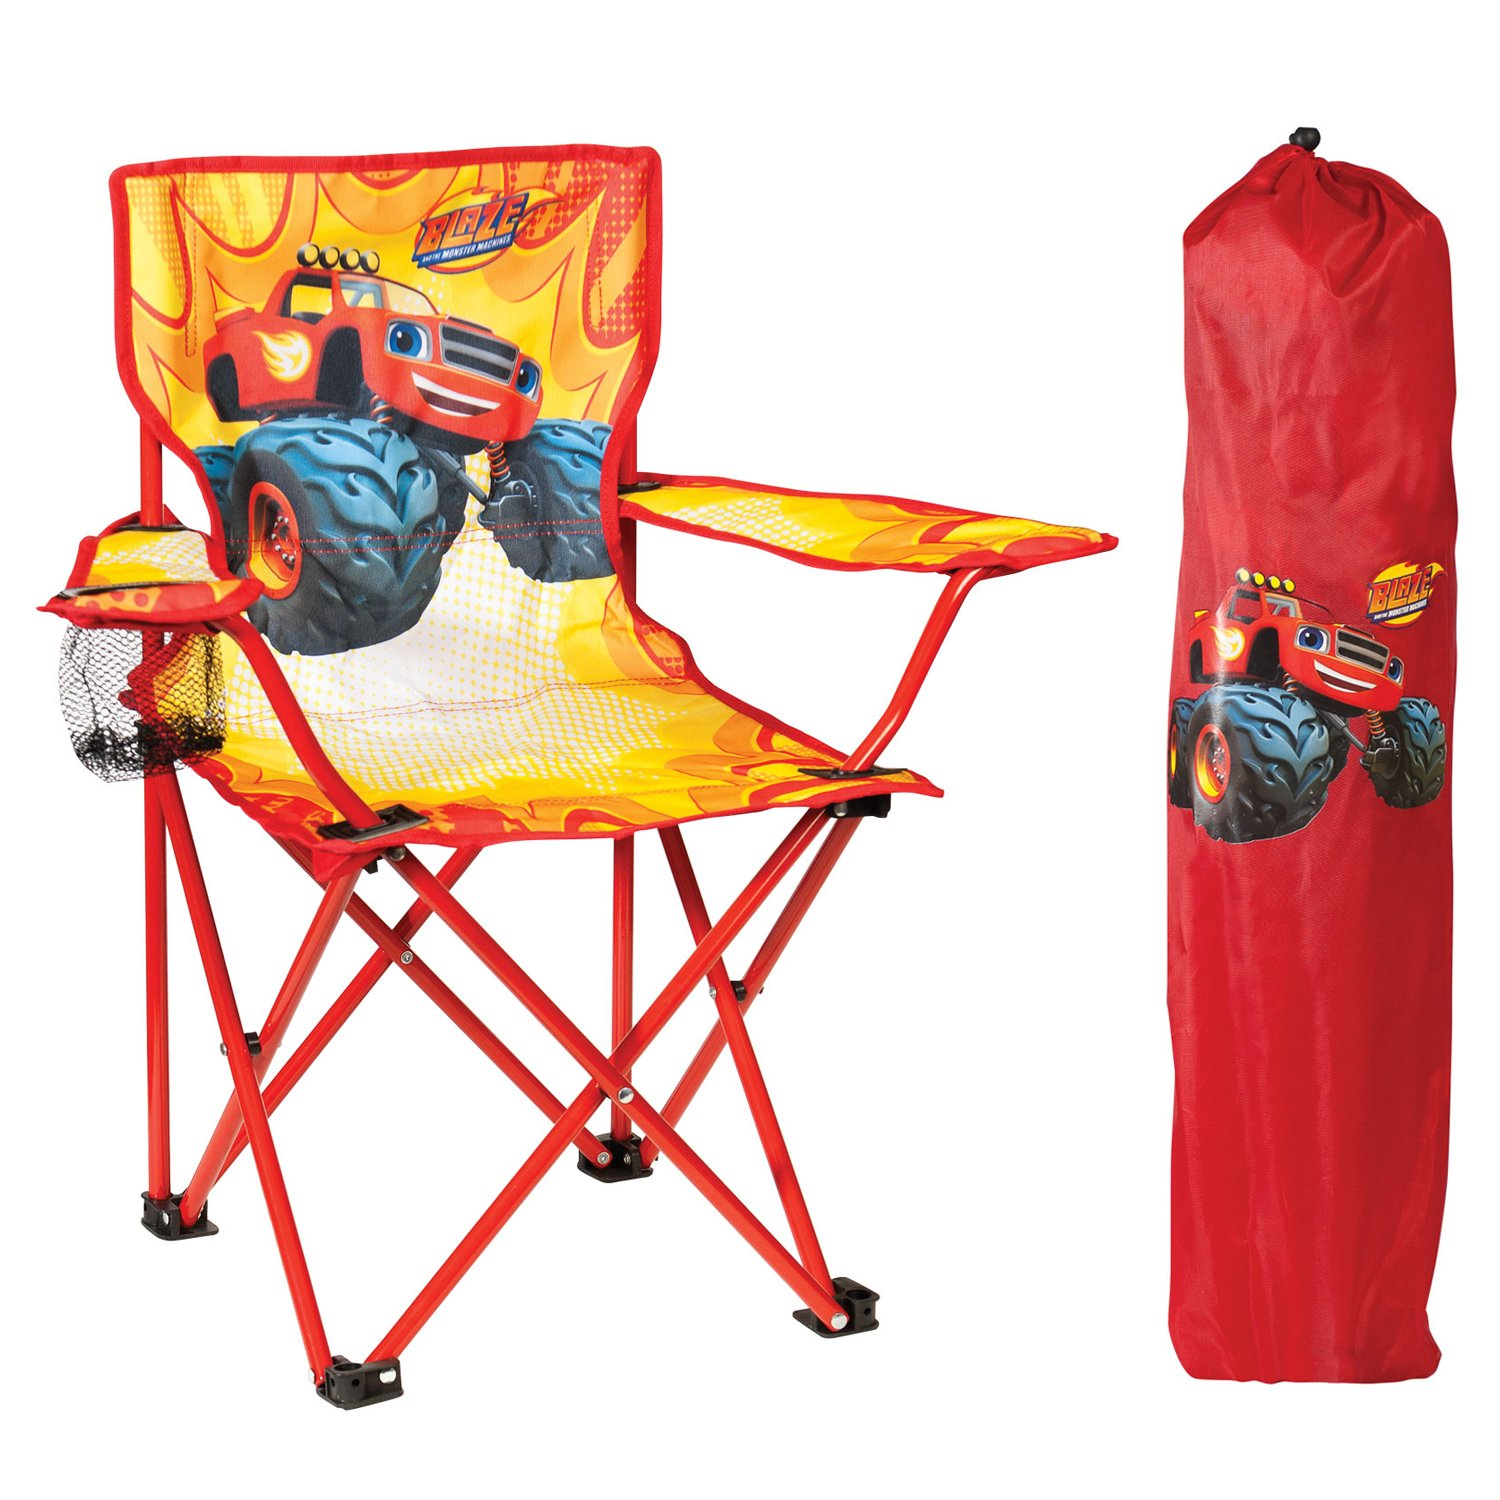 Nickelodeon Blaze & The Monster Machines Fold N' Go Chair with Storage Bag, Red by Nickelodeon